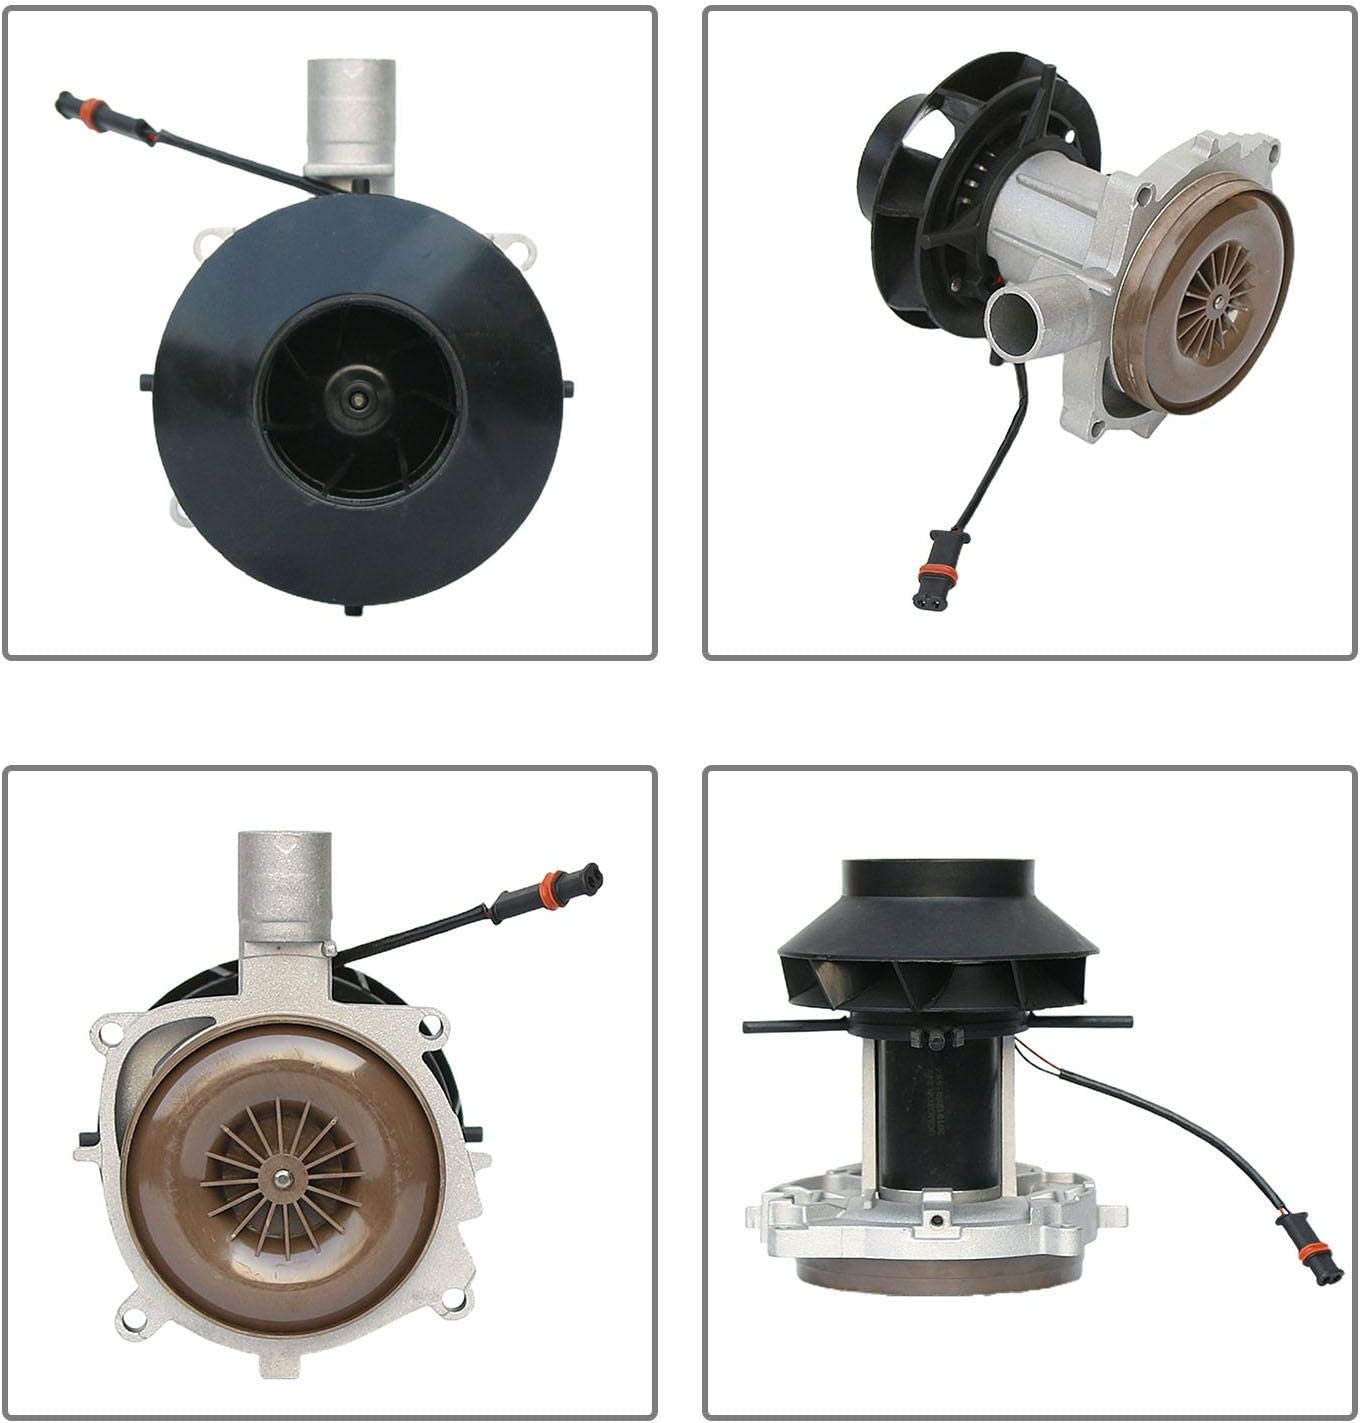 Phrat Blower Motor for Parking Heater 12V for Eberspacher Airtronic D2 2KW Big Leaf Assembly Combustion Air Fan